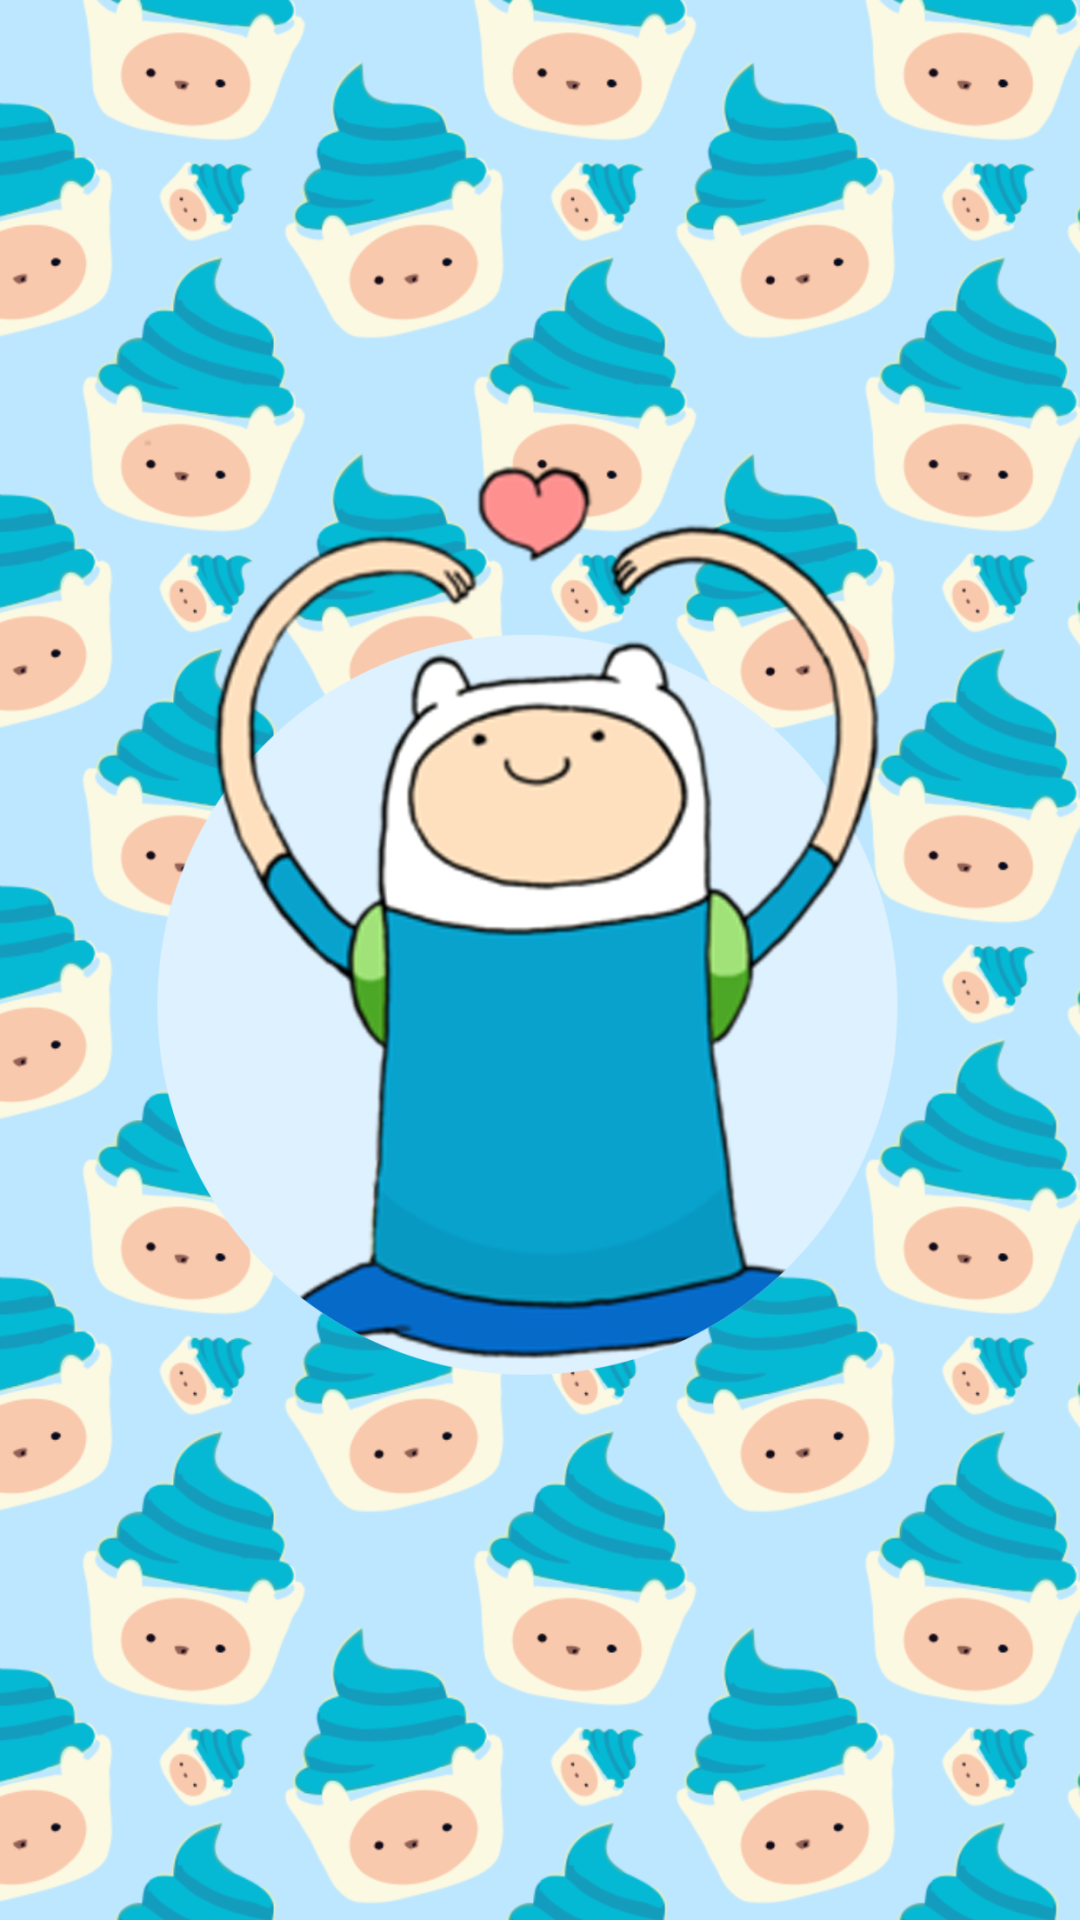 Iphone Wallpaper Tumblr Adventure Time Wallpaper Adventure Time Adventure Time Art